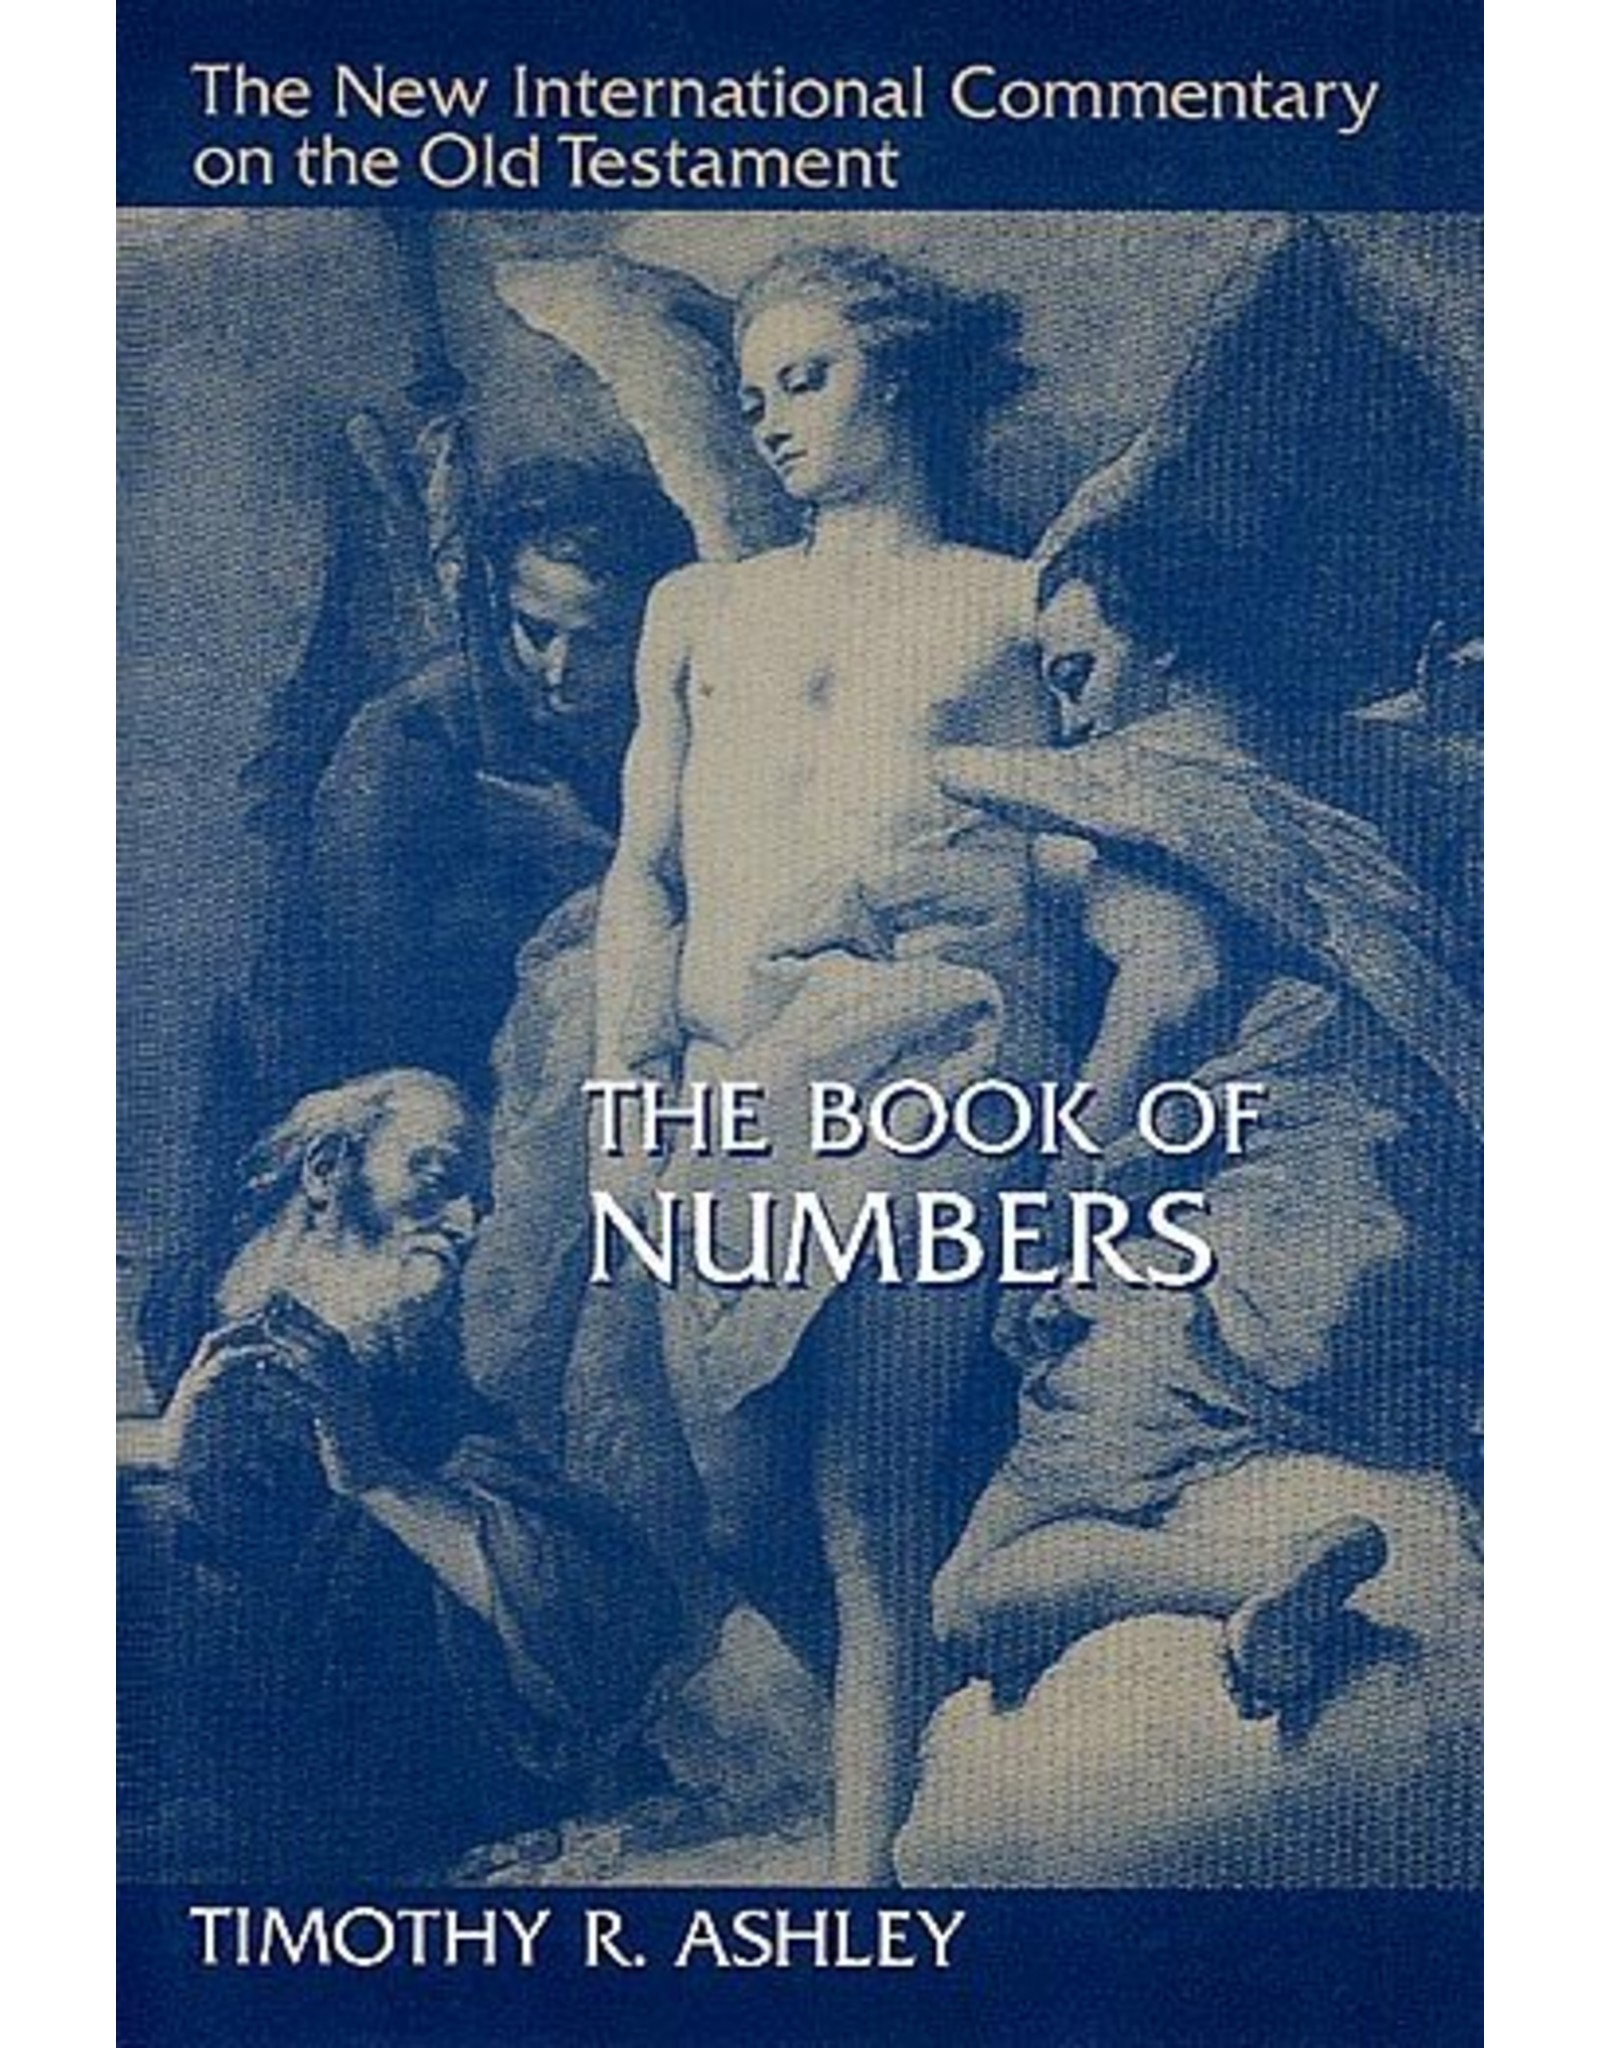 Wm. B. Eerdmans New International Commentary on the Old Testament: The Book Of Numbers